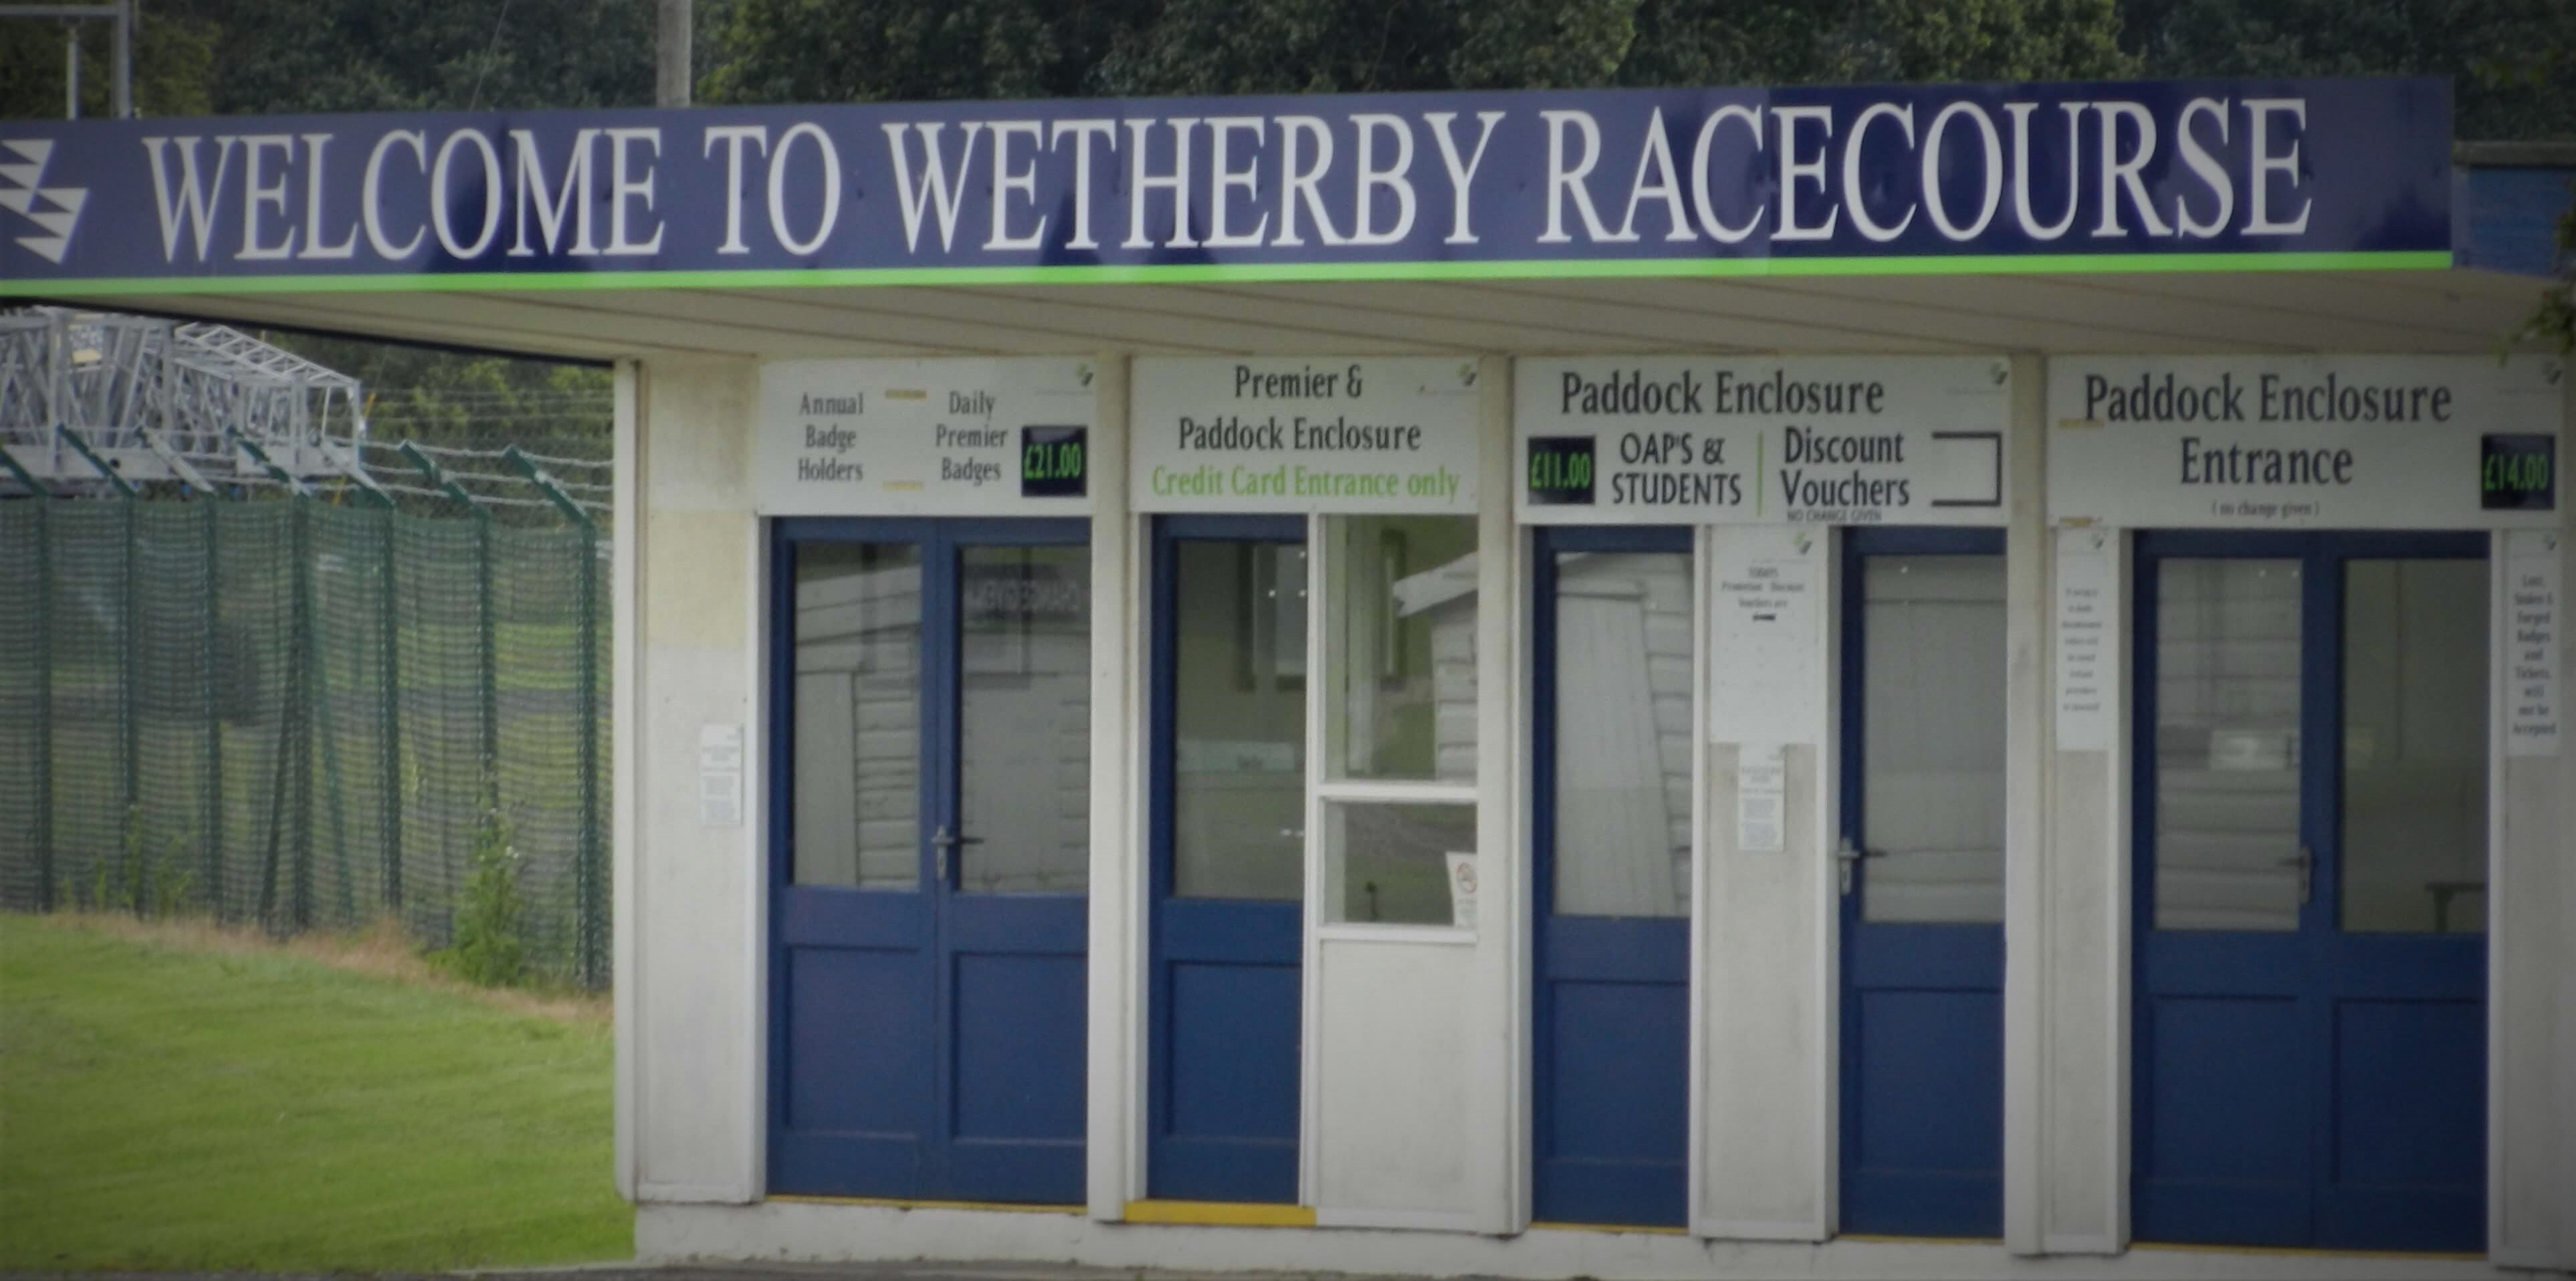 Entrance to Wetherby Racecourse